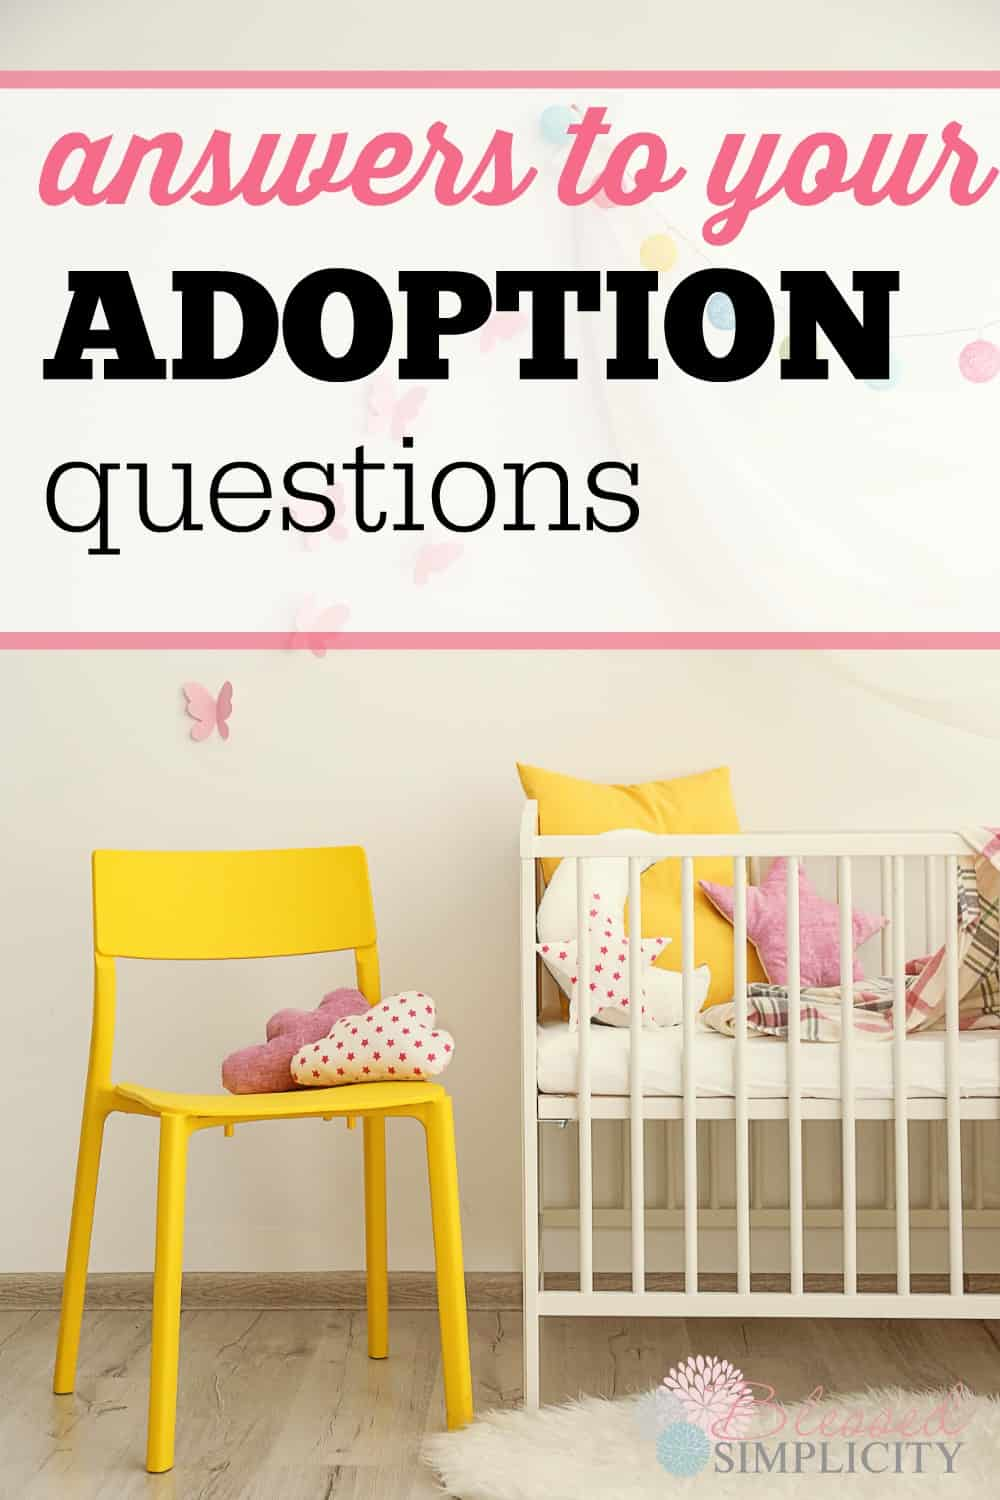 How to adopt a child.  Good explanation of the avenues of adoption.